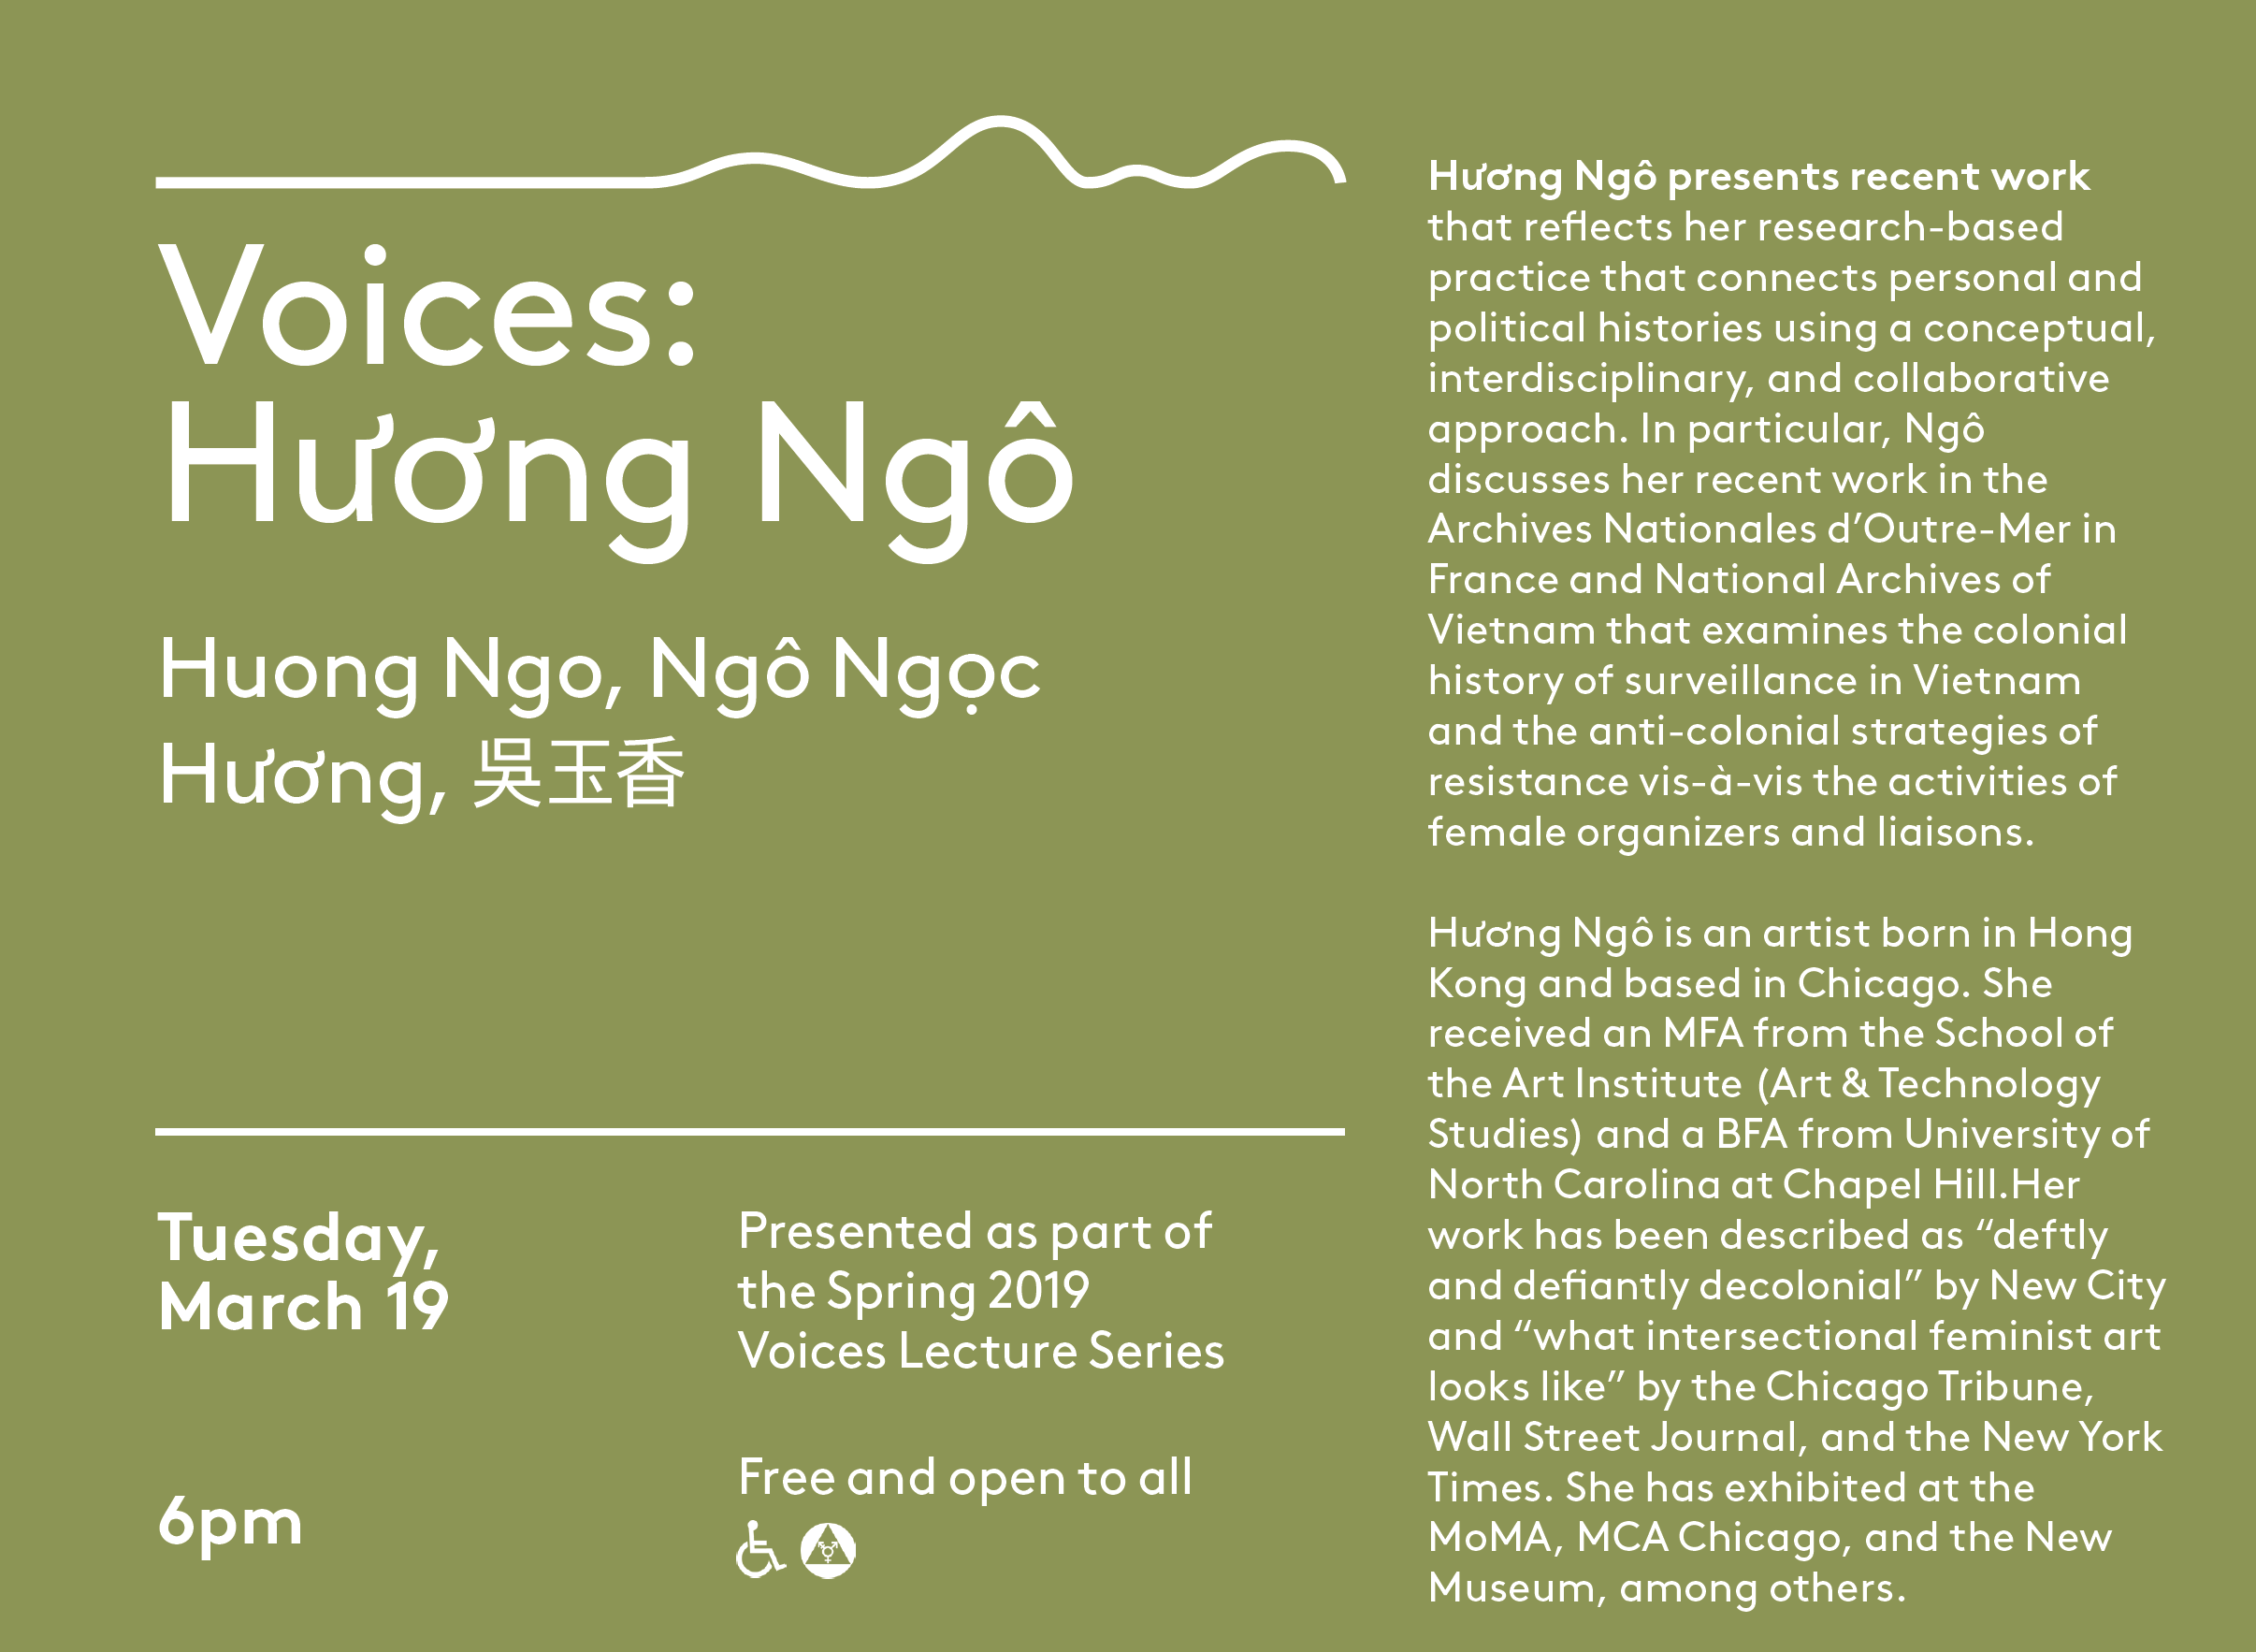 Ngo_Huong_UIC_Gallery_400_Voices_01.png